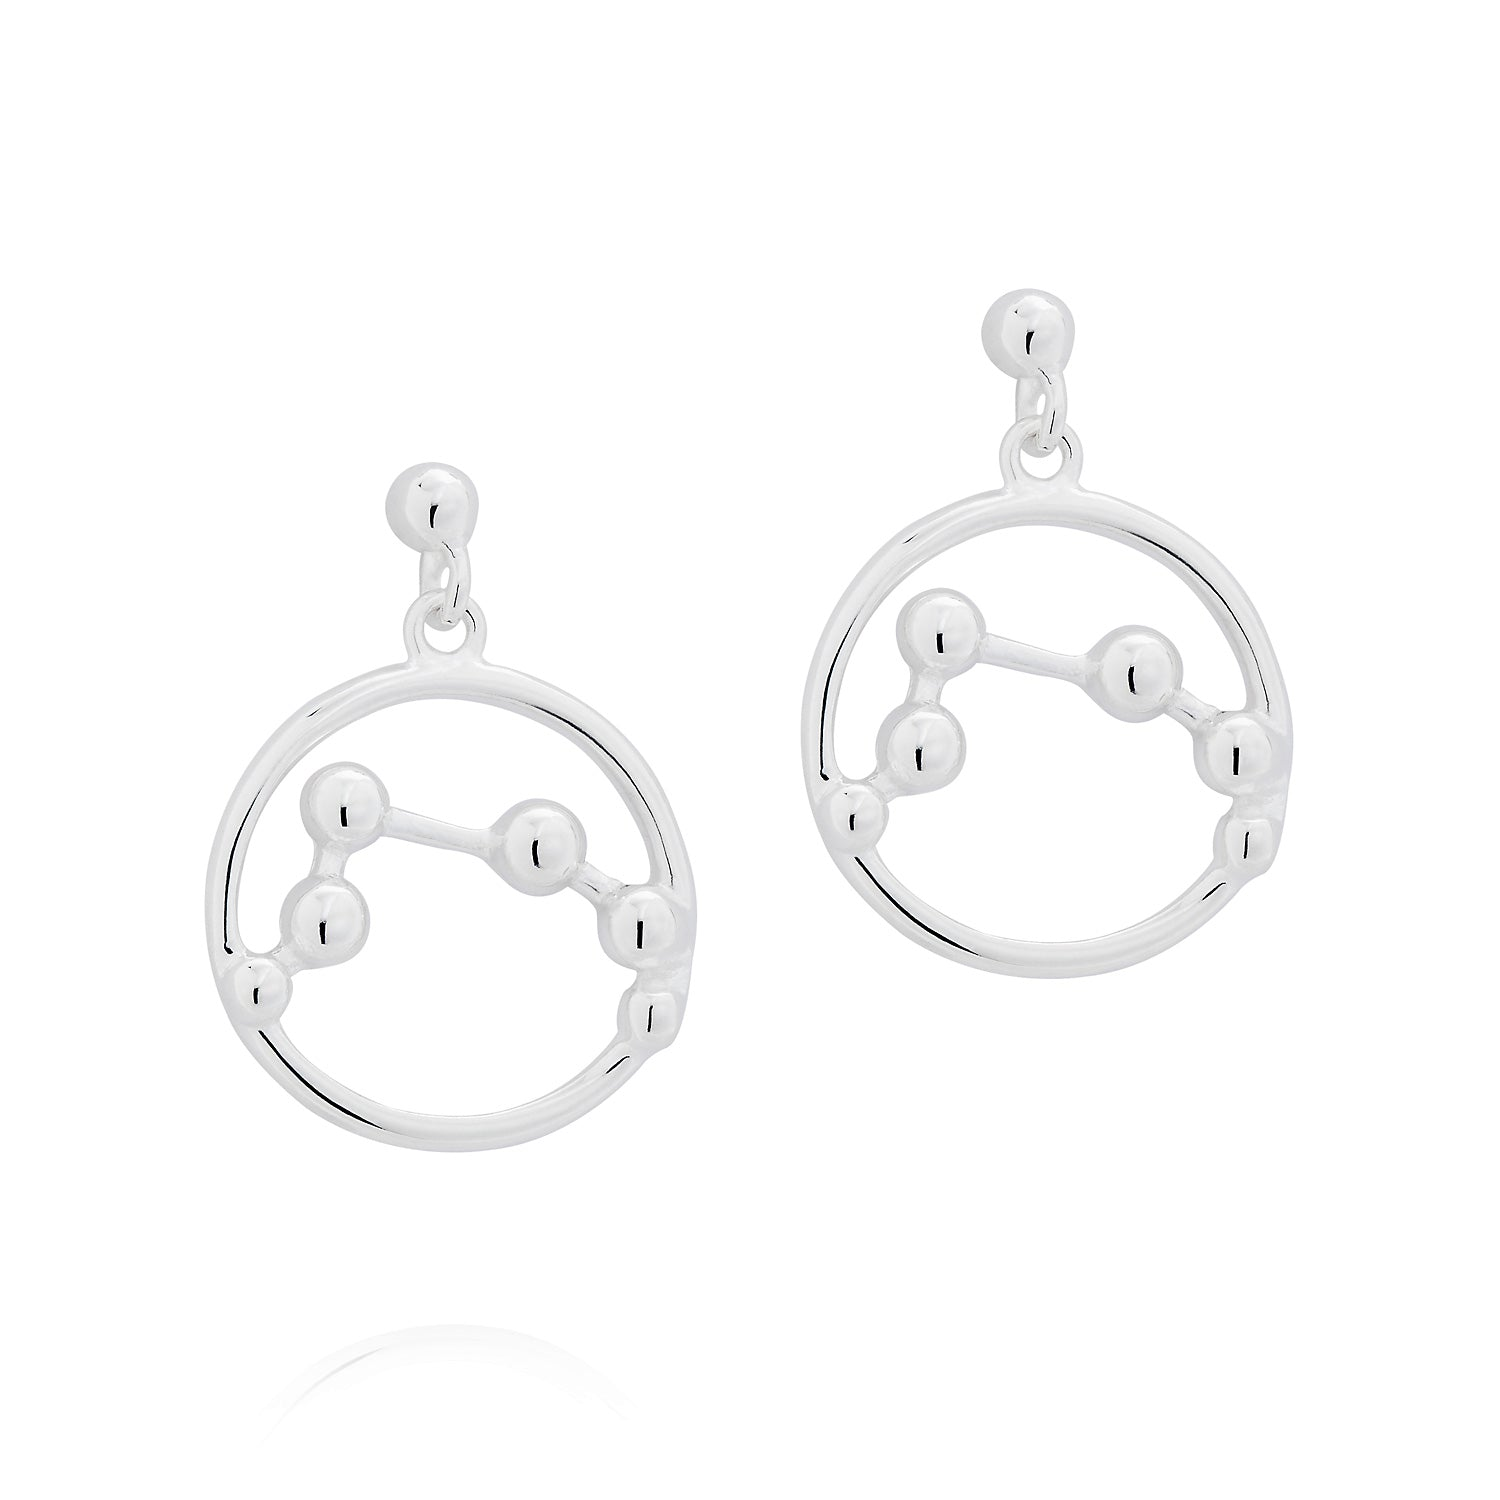 Star Sign Silver Earrings by Yasmin Everley